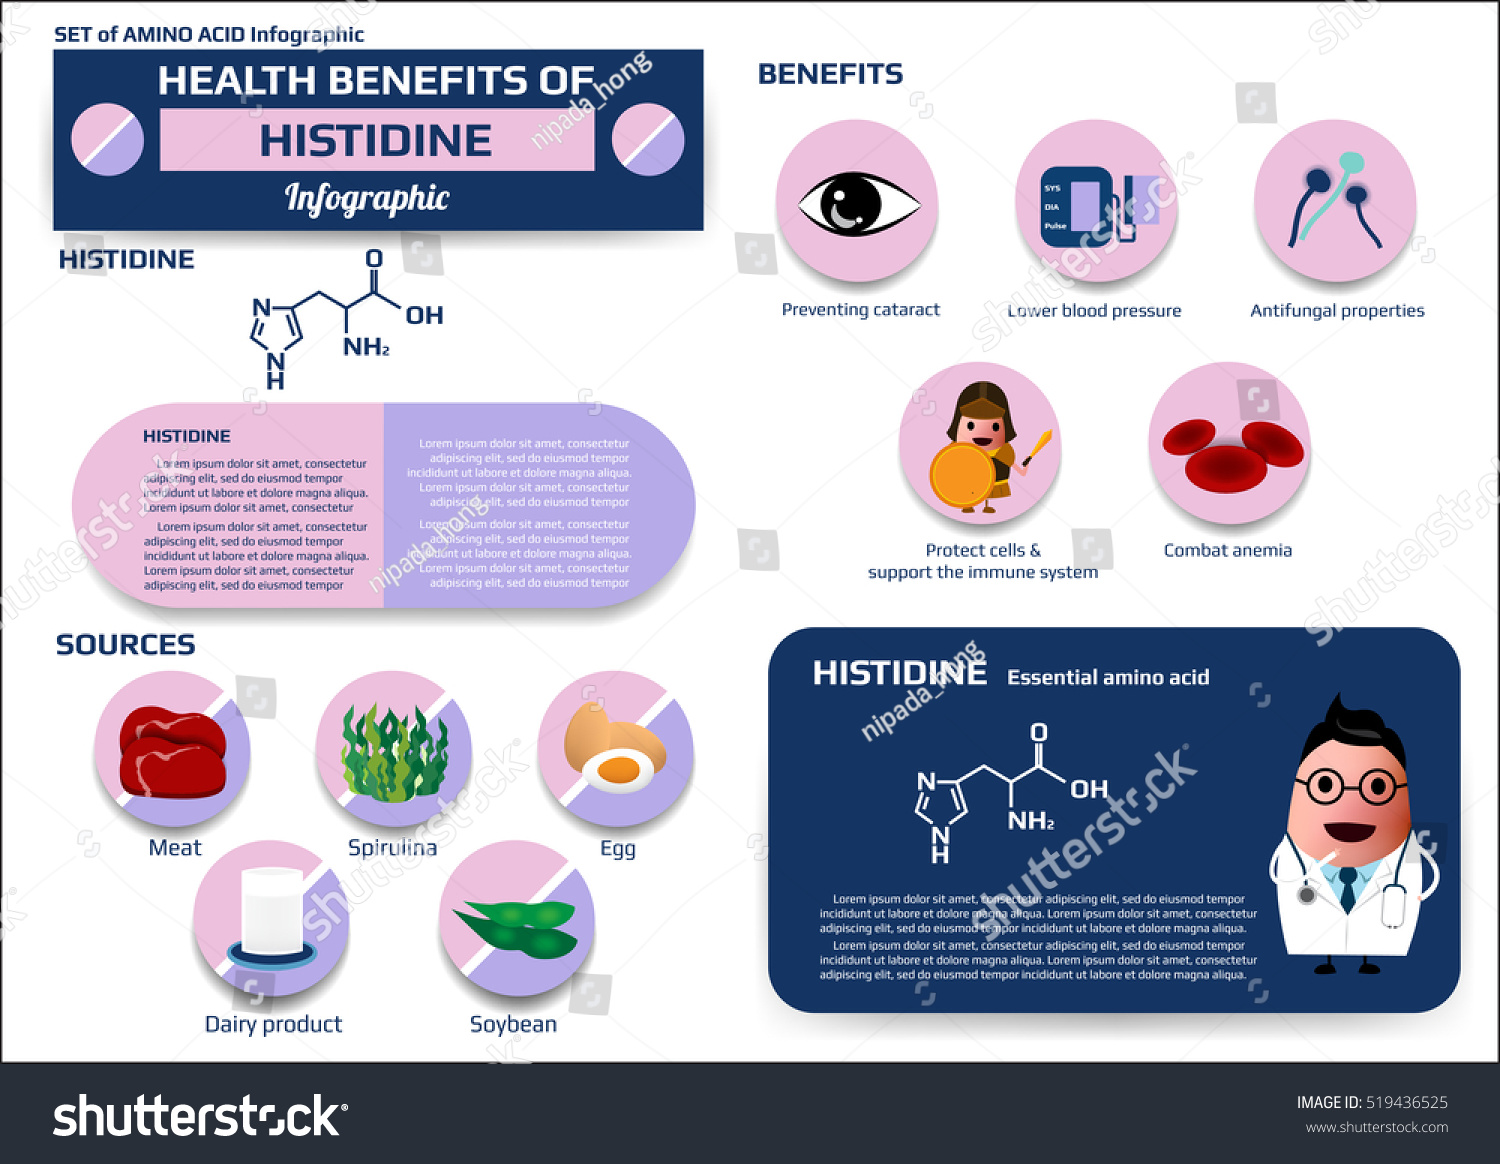 amino acid supplements benefits set health benefits histidine essential amino stock vector 17711